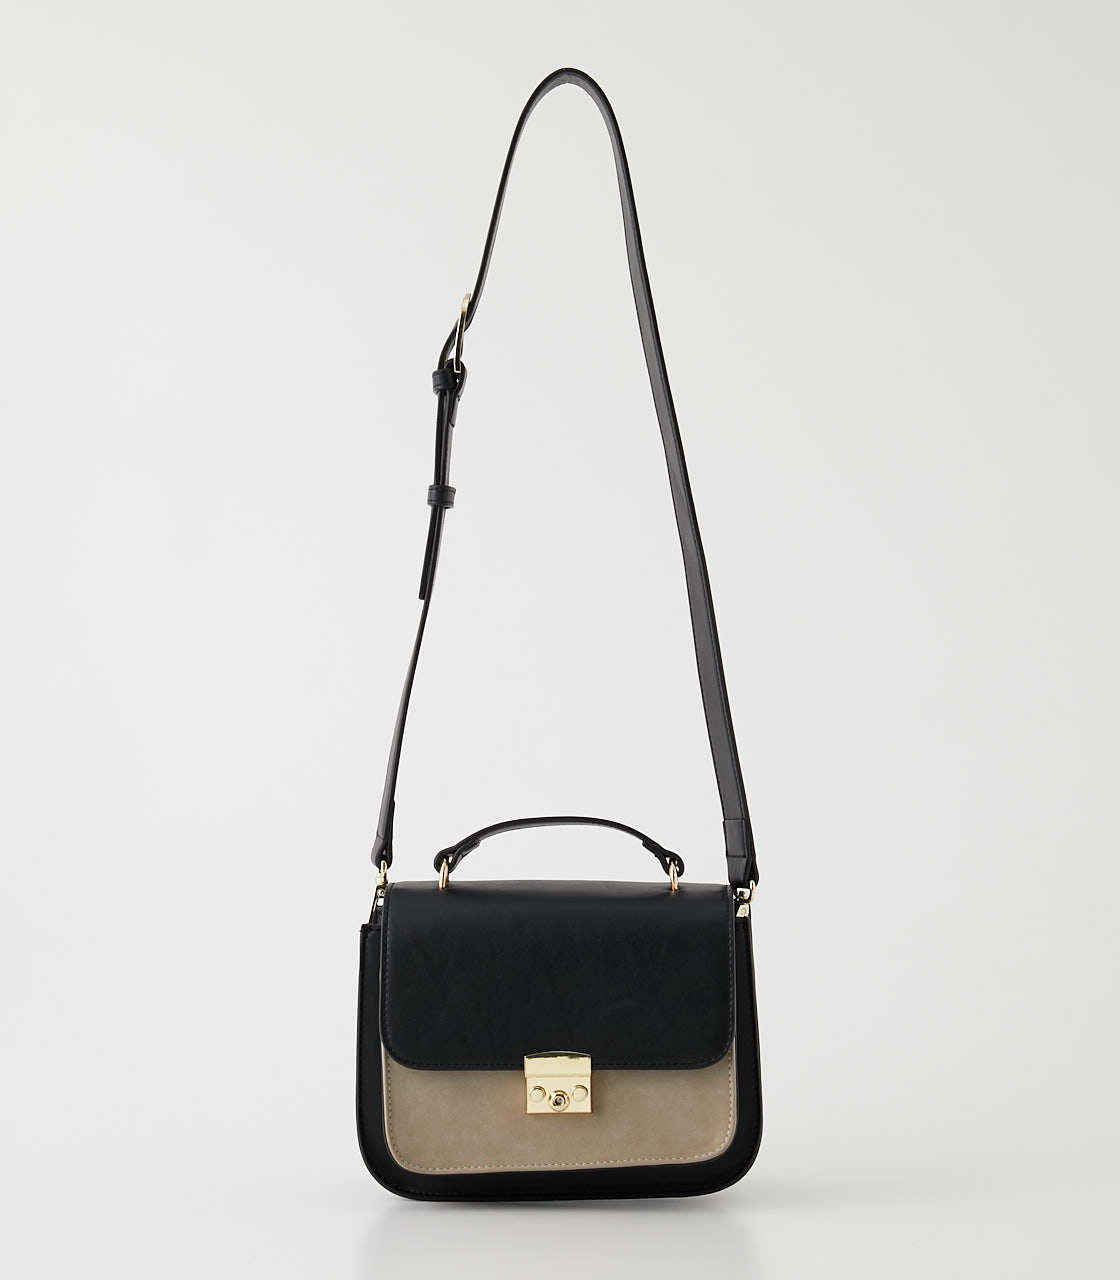 COLOR CONTRAST SHOULDER BAG/カラーコントラストショルダーバッグ 詳細画像 BLK 1